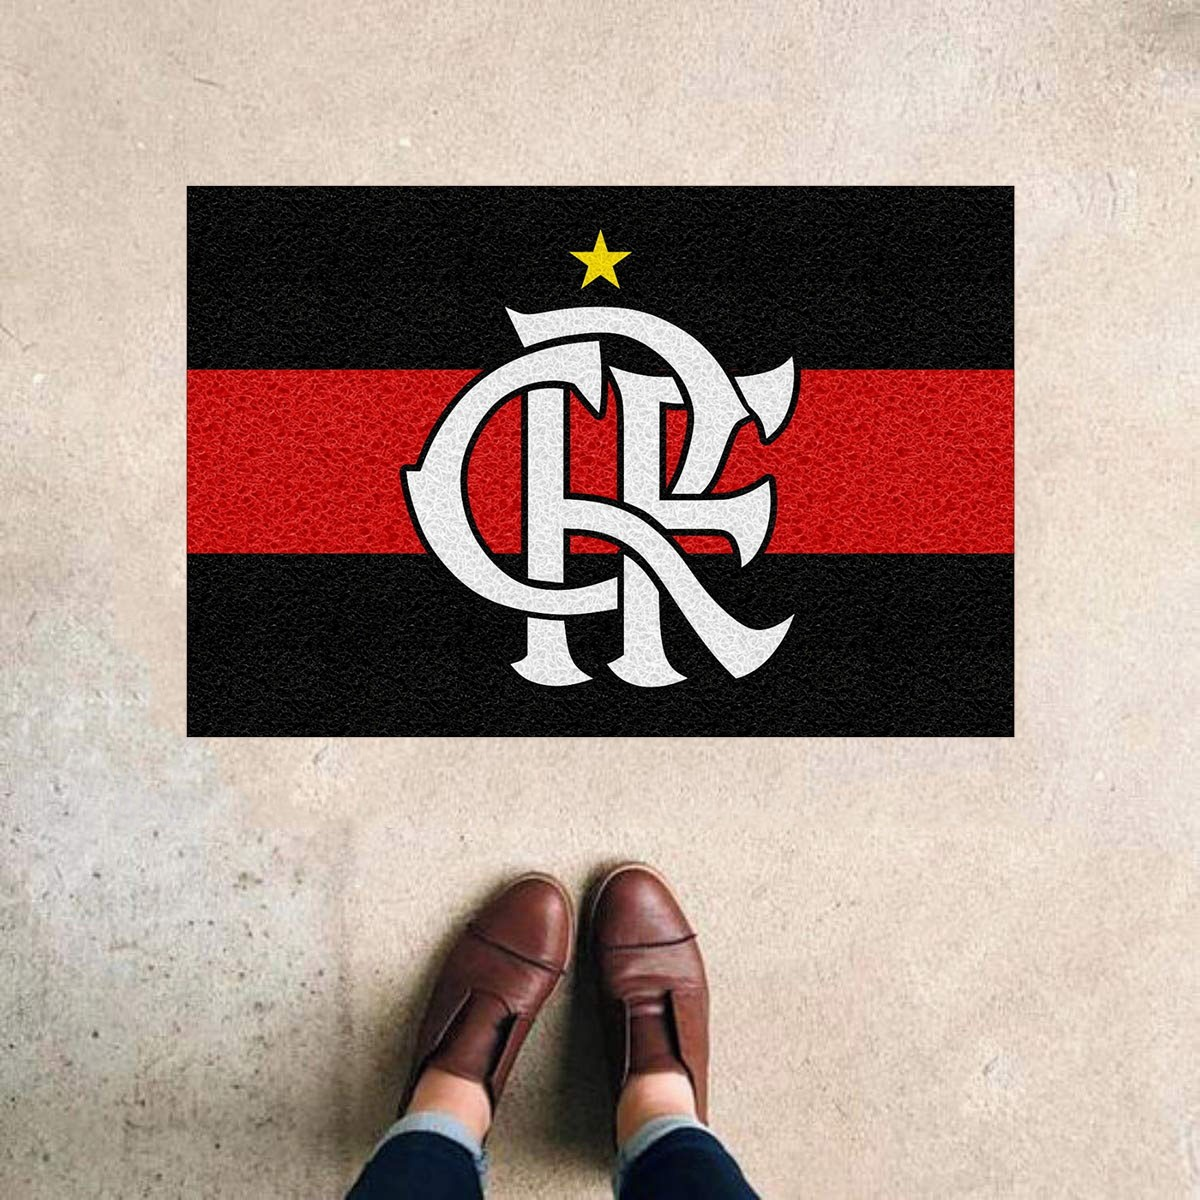 TAPETE CAPACHO DO FLAMENGO